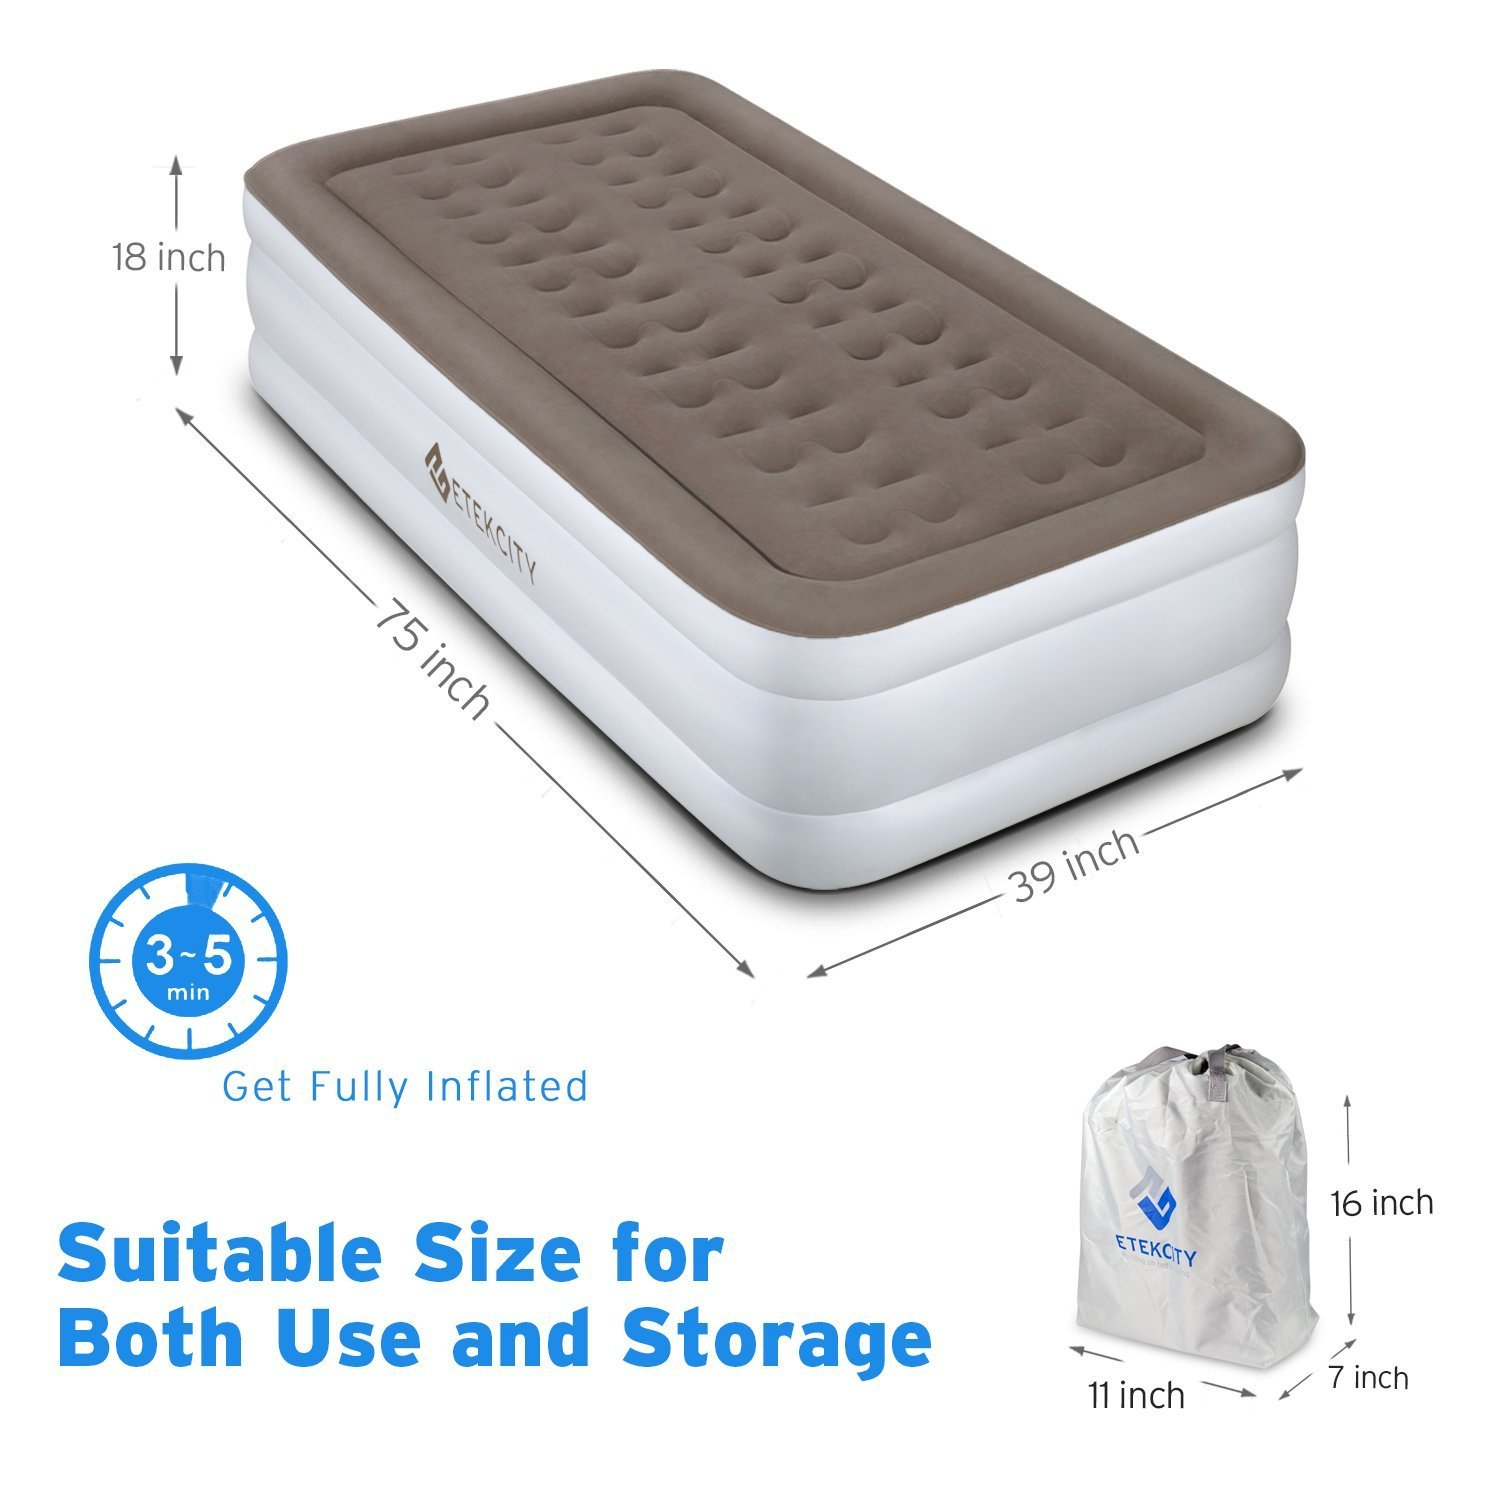 Etekcity 2 Pack Upgraded Air Mattress Blow Up Raised Airbed with Built-in High Capacity Pump, Height 18'', Twin Size by Etekcity (Image #2)